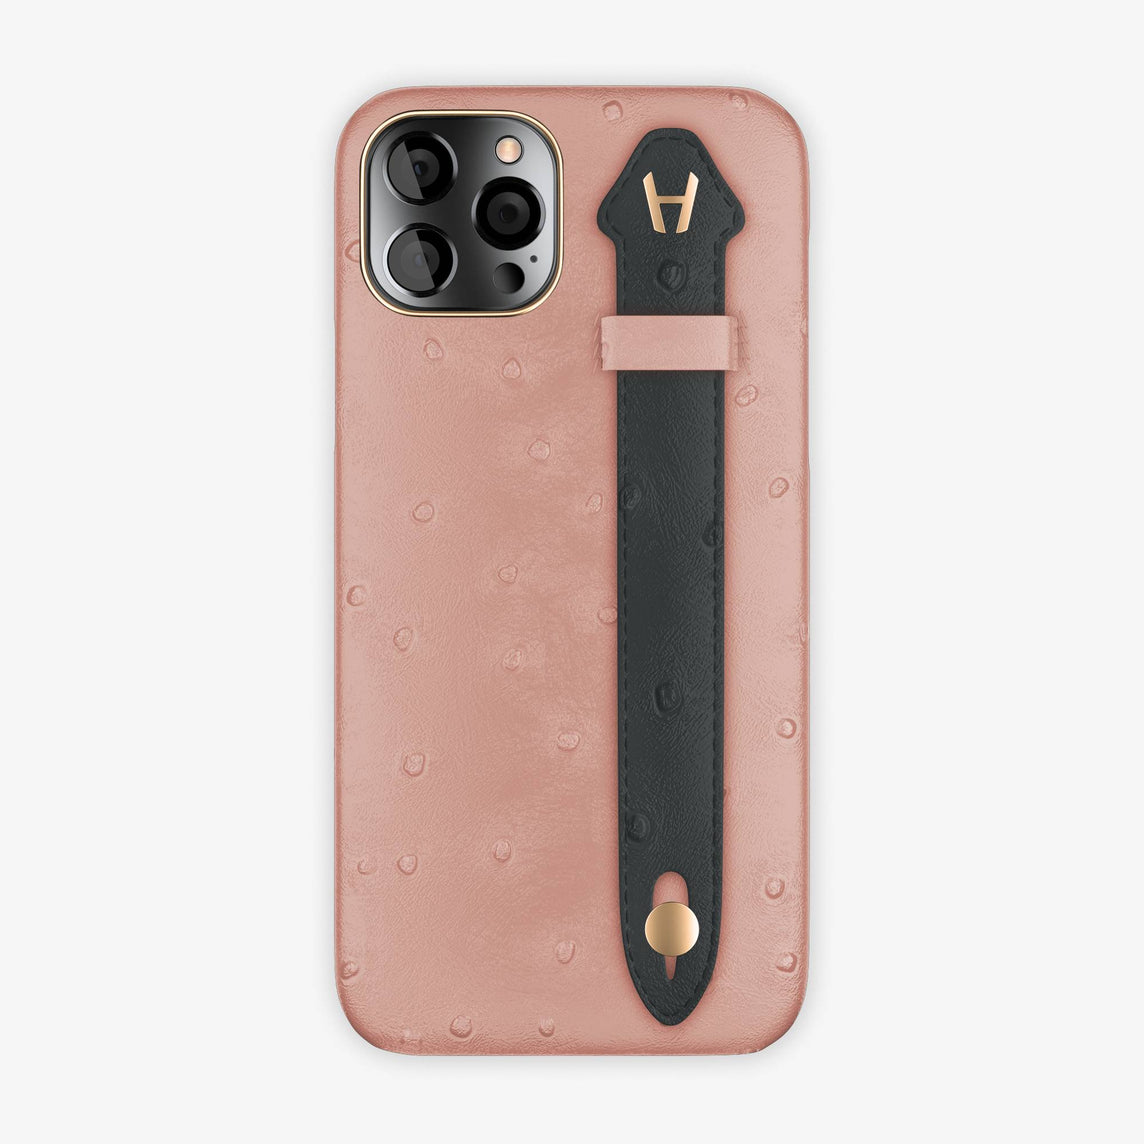 Ostrich Side Finger Case iPhone 12 Pro | Pink/Anthracite - Rose Gold